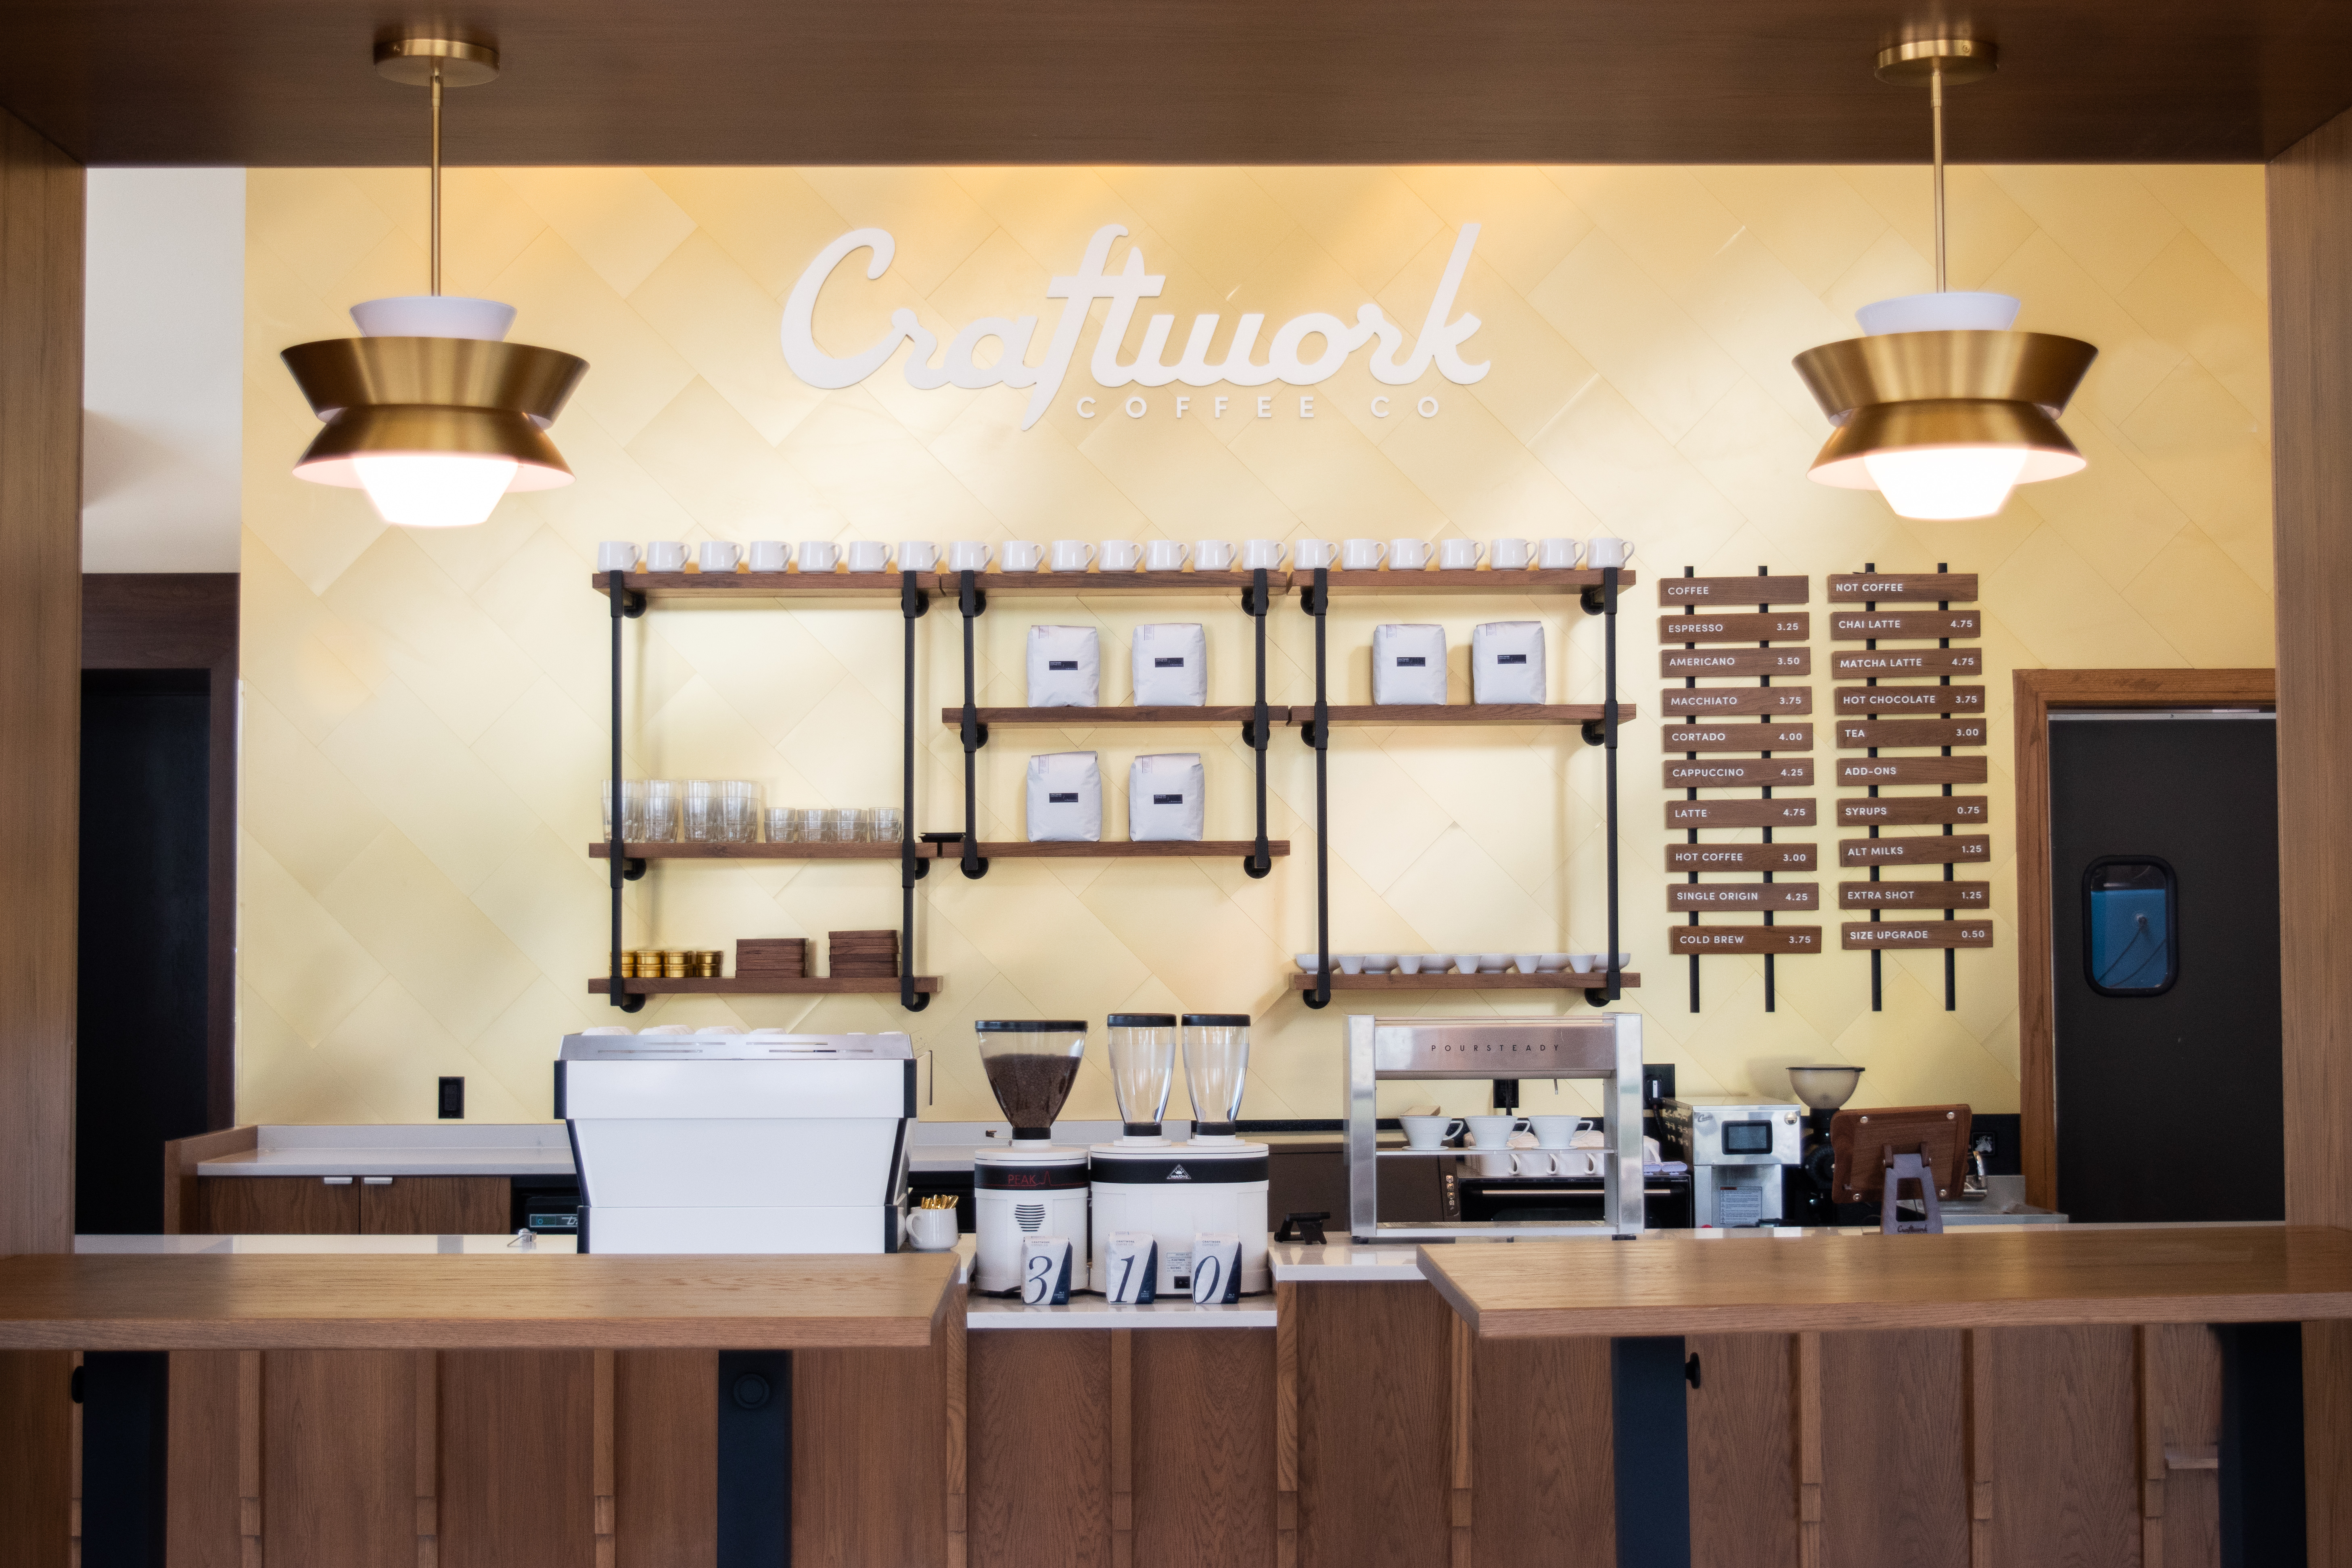 Craftwork Coffee Co. in the Domain